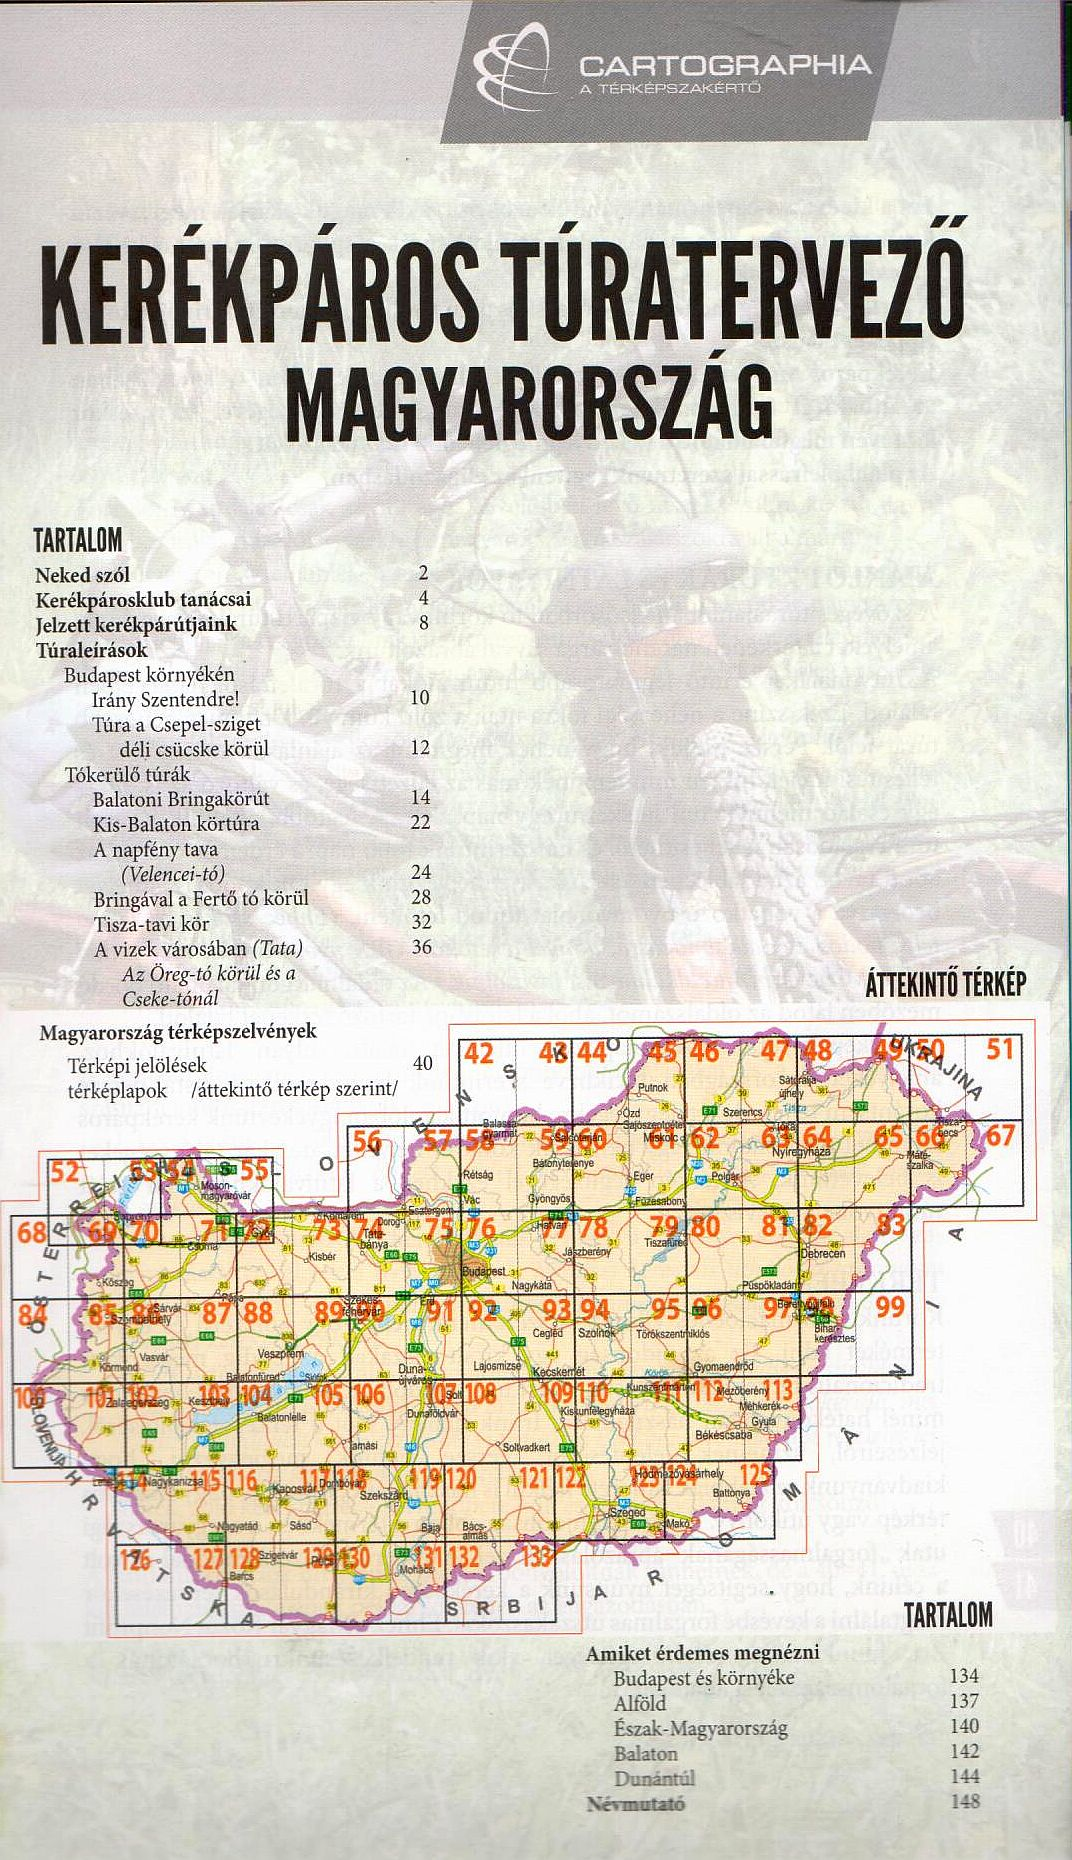 Hungary cycling guide/atlas: contents